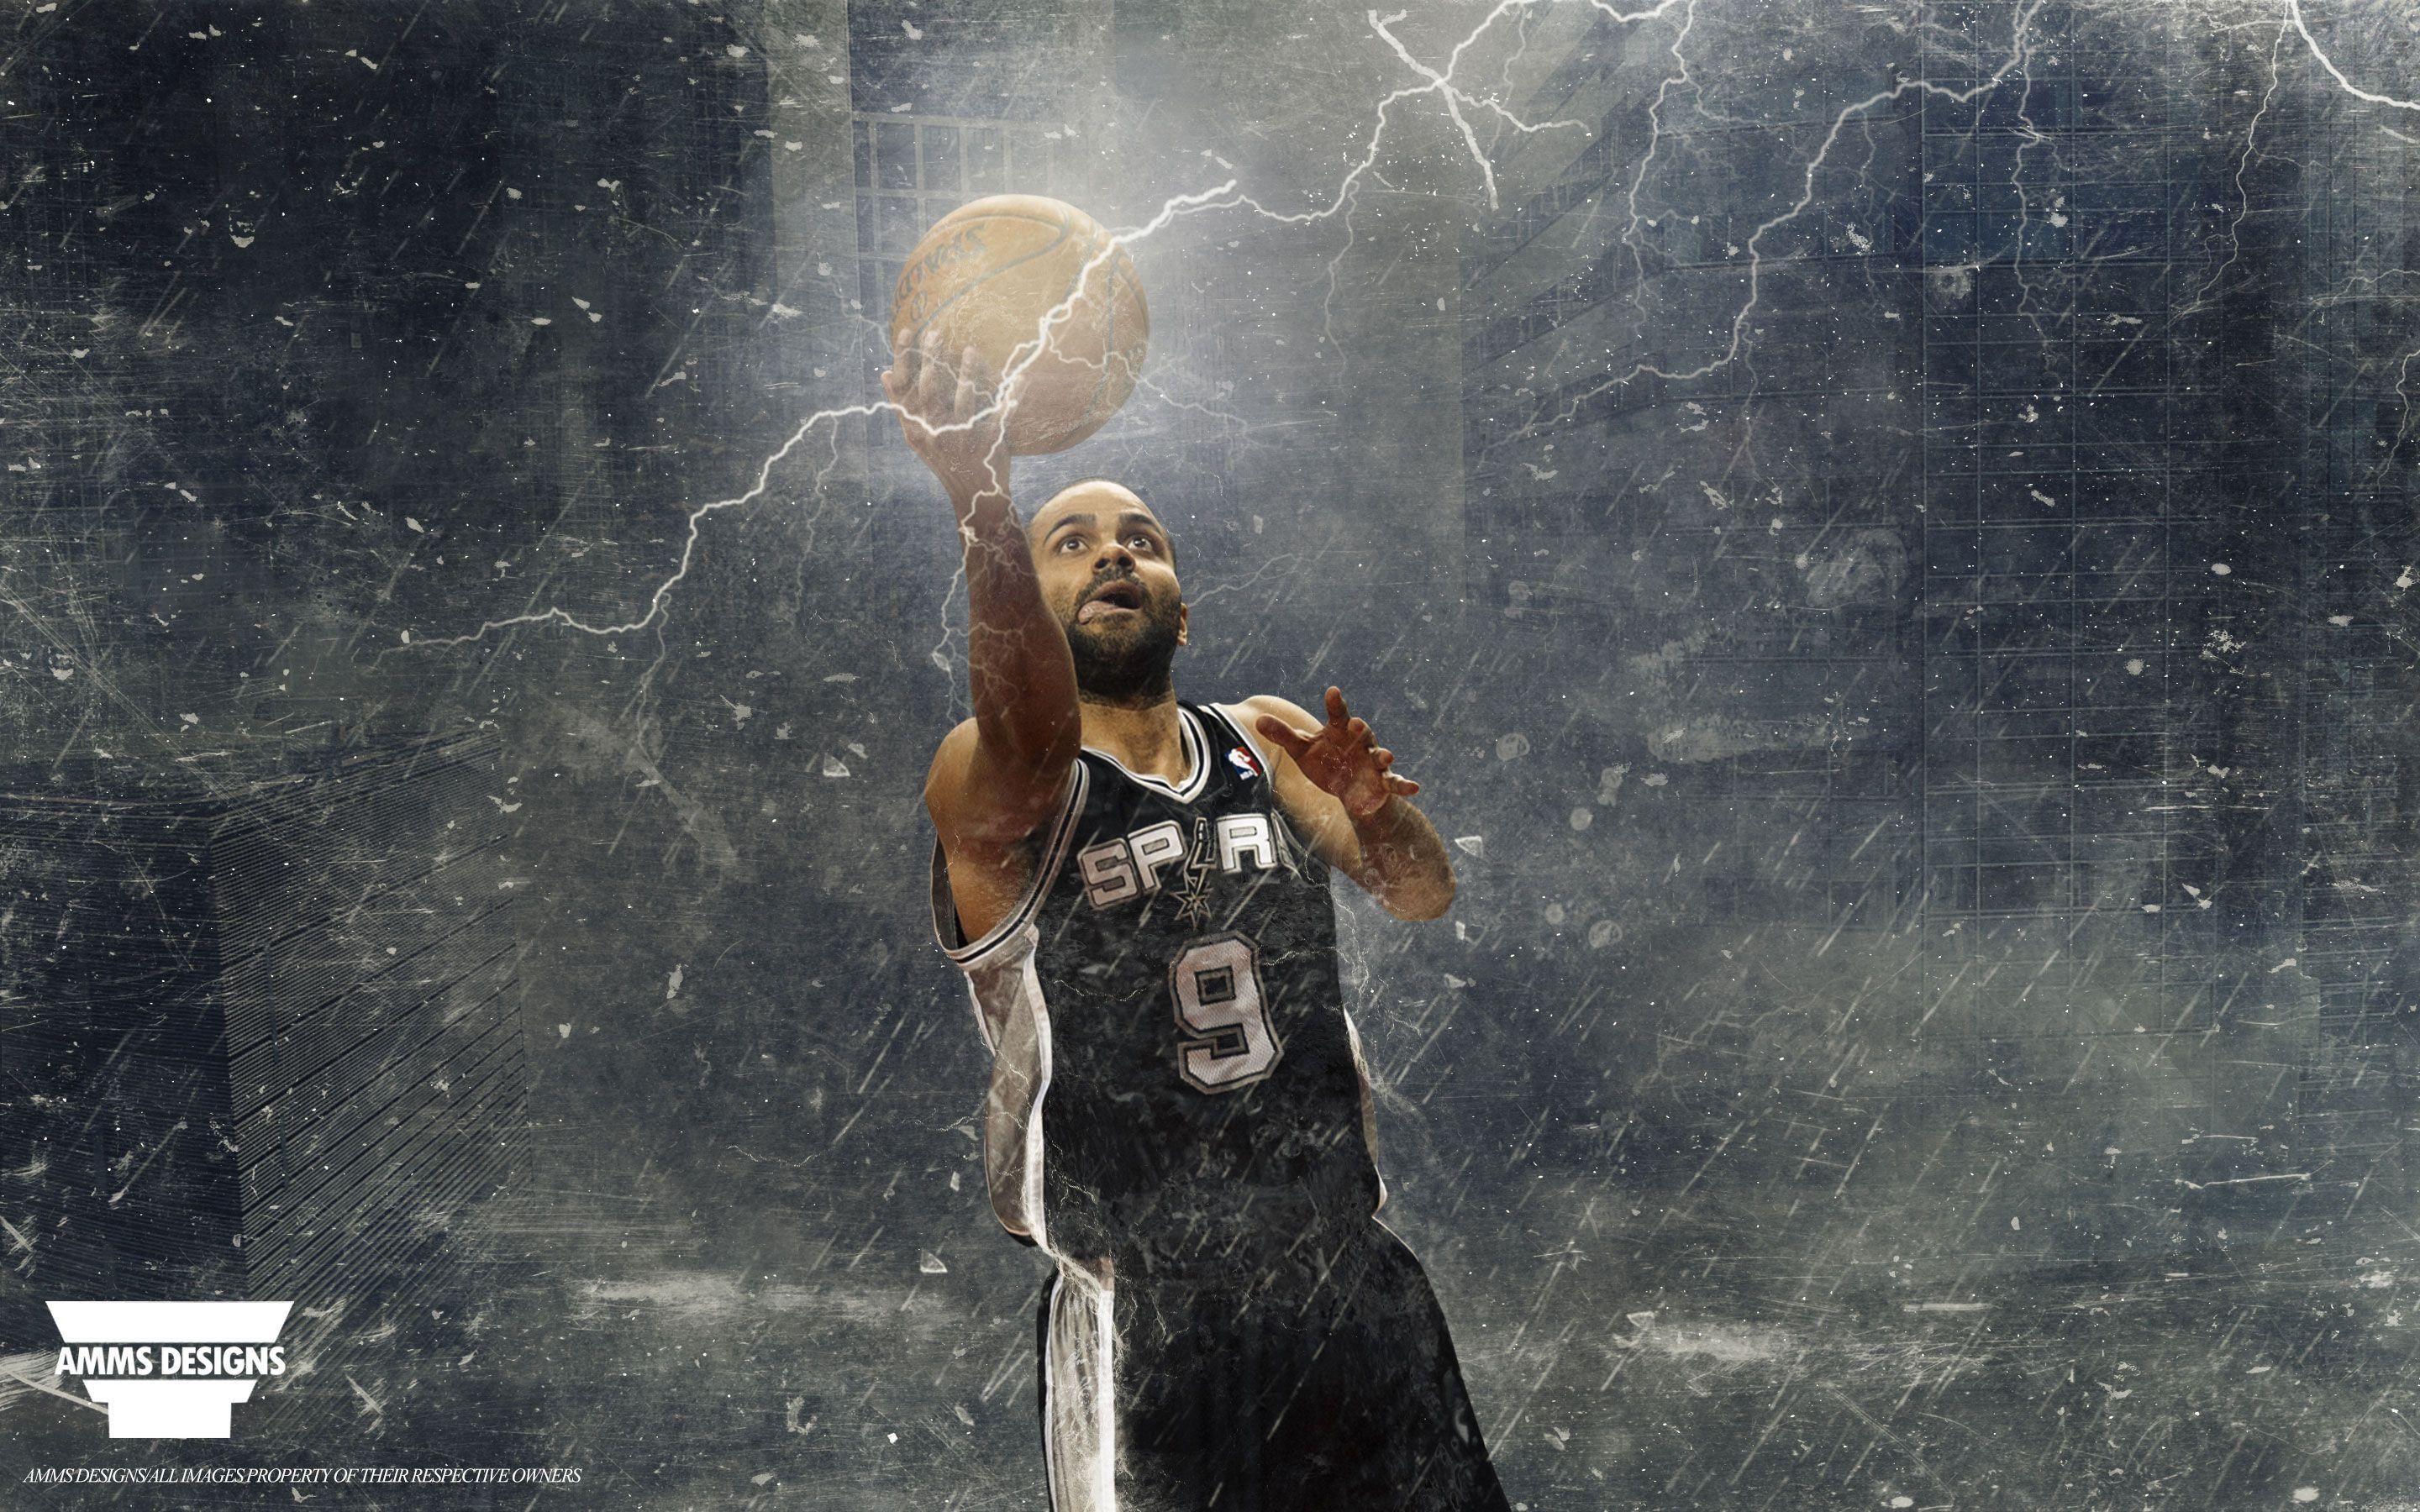 Tony Parker Wallpapers | Basketball Wallpapers at BasketWallpapers.com